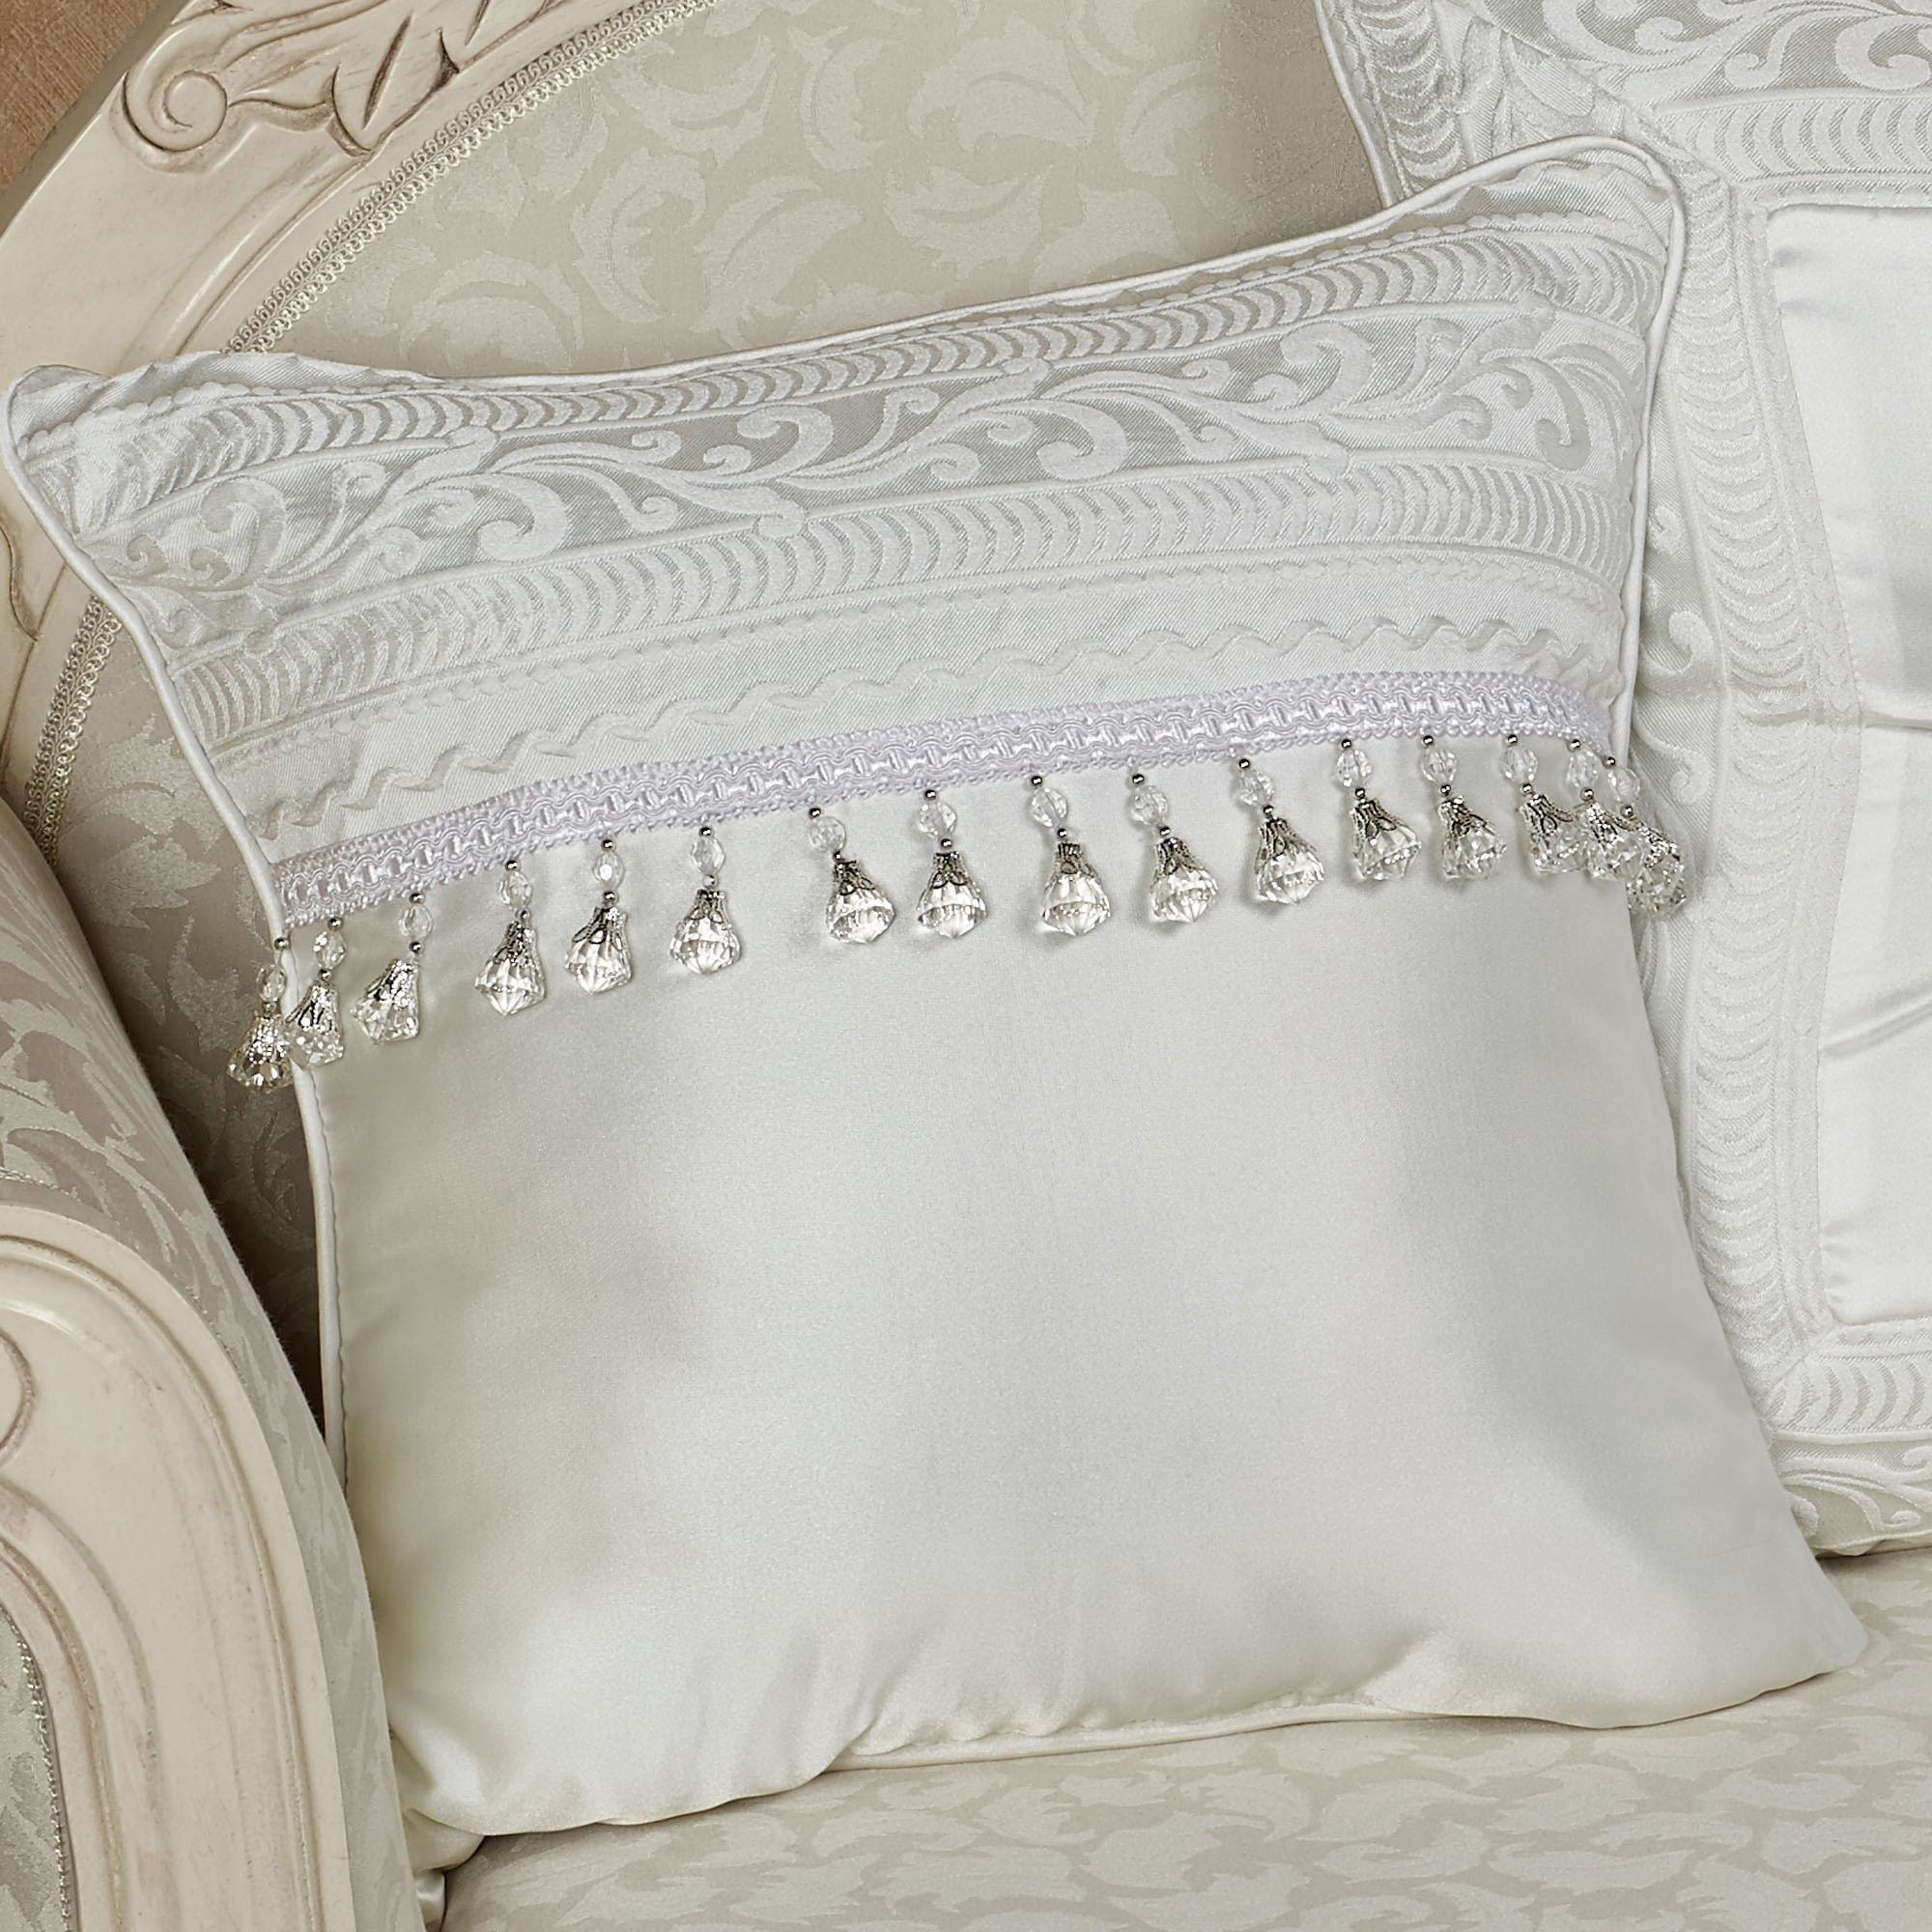 Genial Bianco Beaded Pillow Bianco Solid Decorative Pillows By J Queen New York Throw Pillows Cheap Furry Throw Pillows decor White Throw Pillows